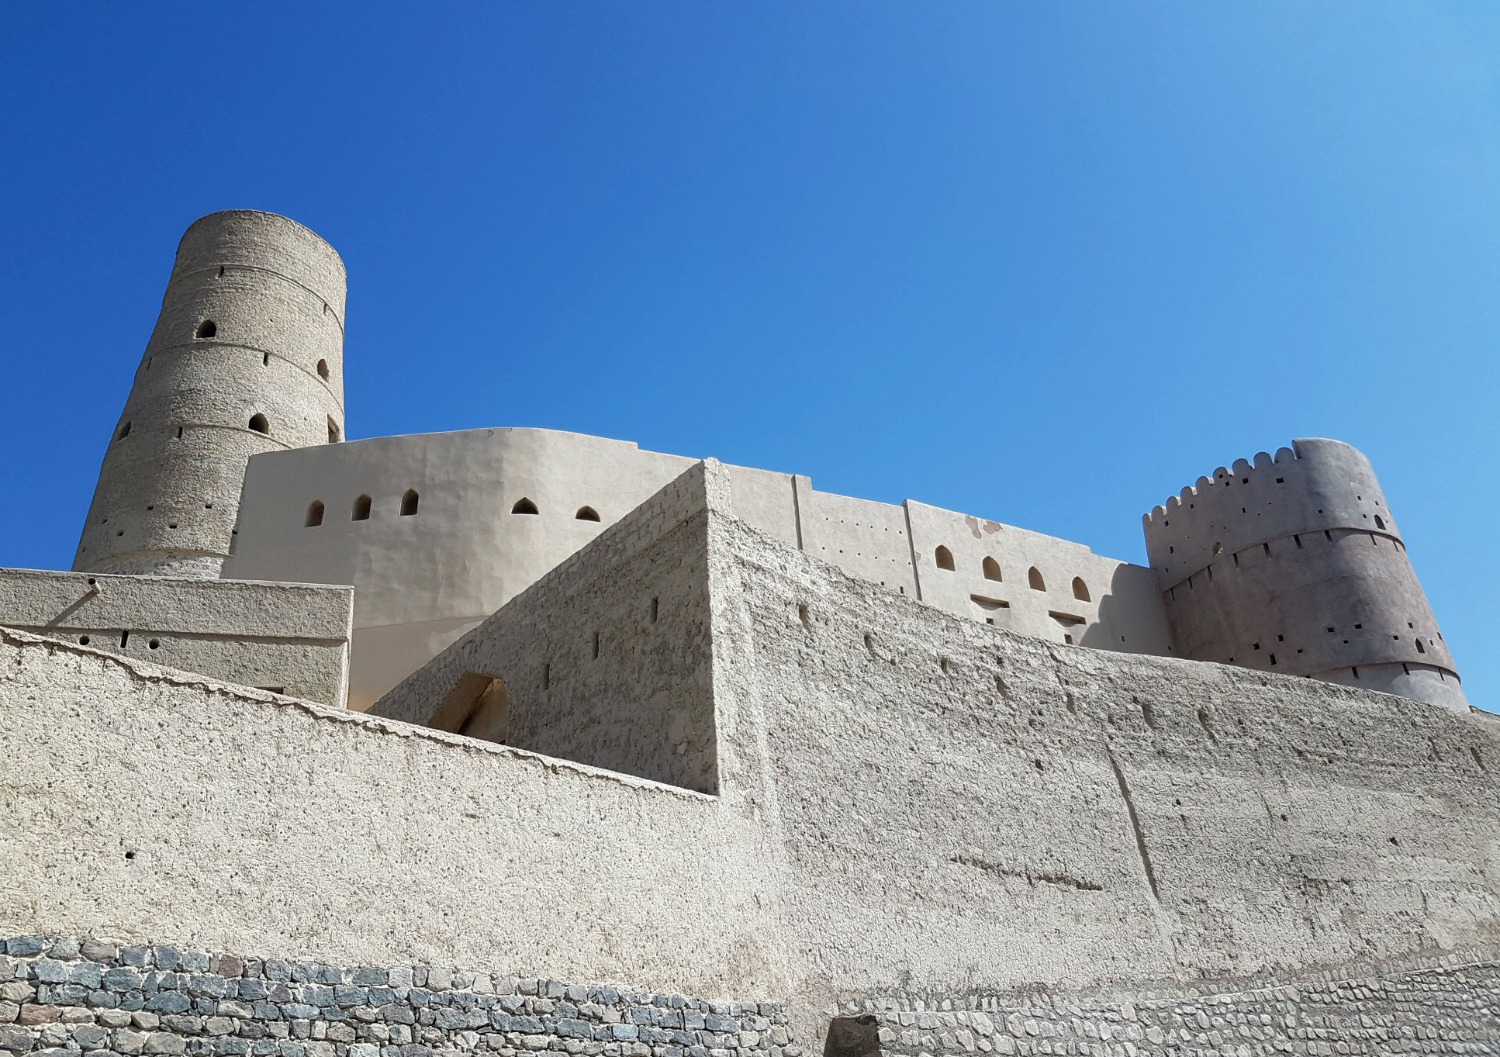 visiting Oman's forts: the white buildings of Bahla fort in Oman against a blue sky - my nine reasons to visit Oman with kids